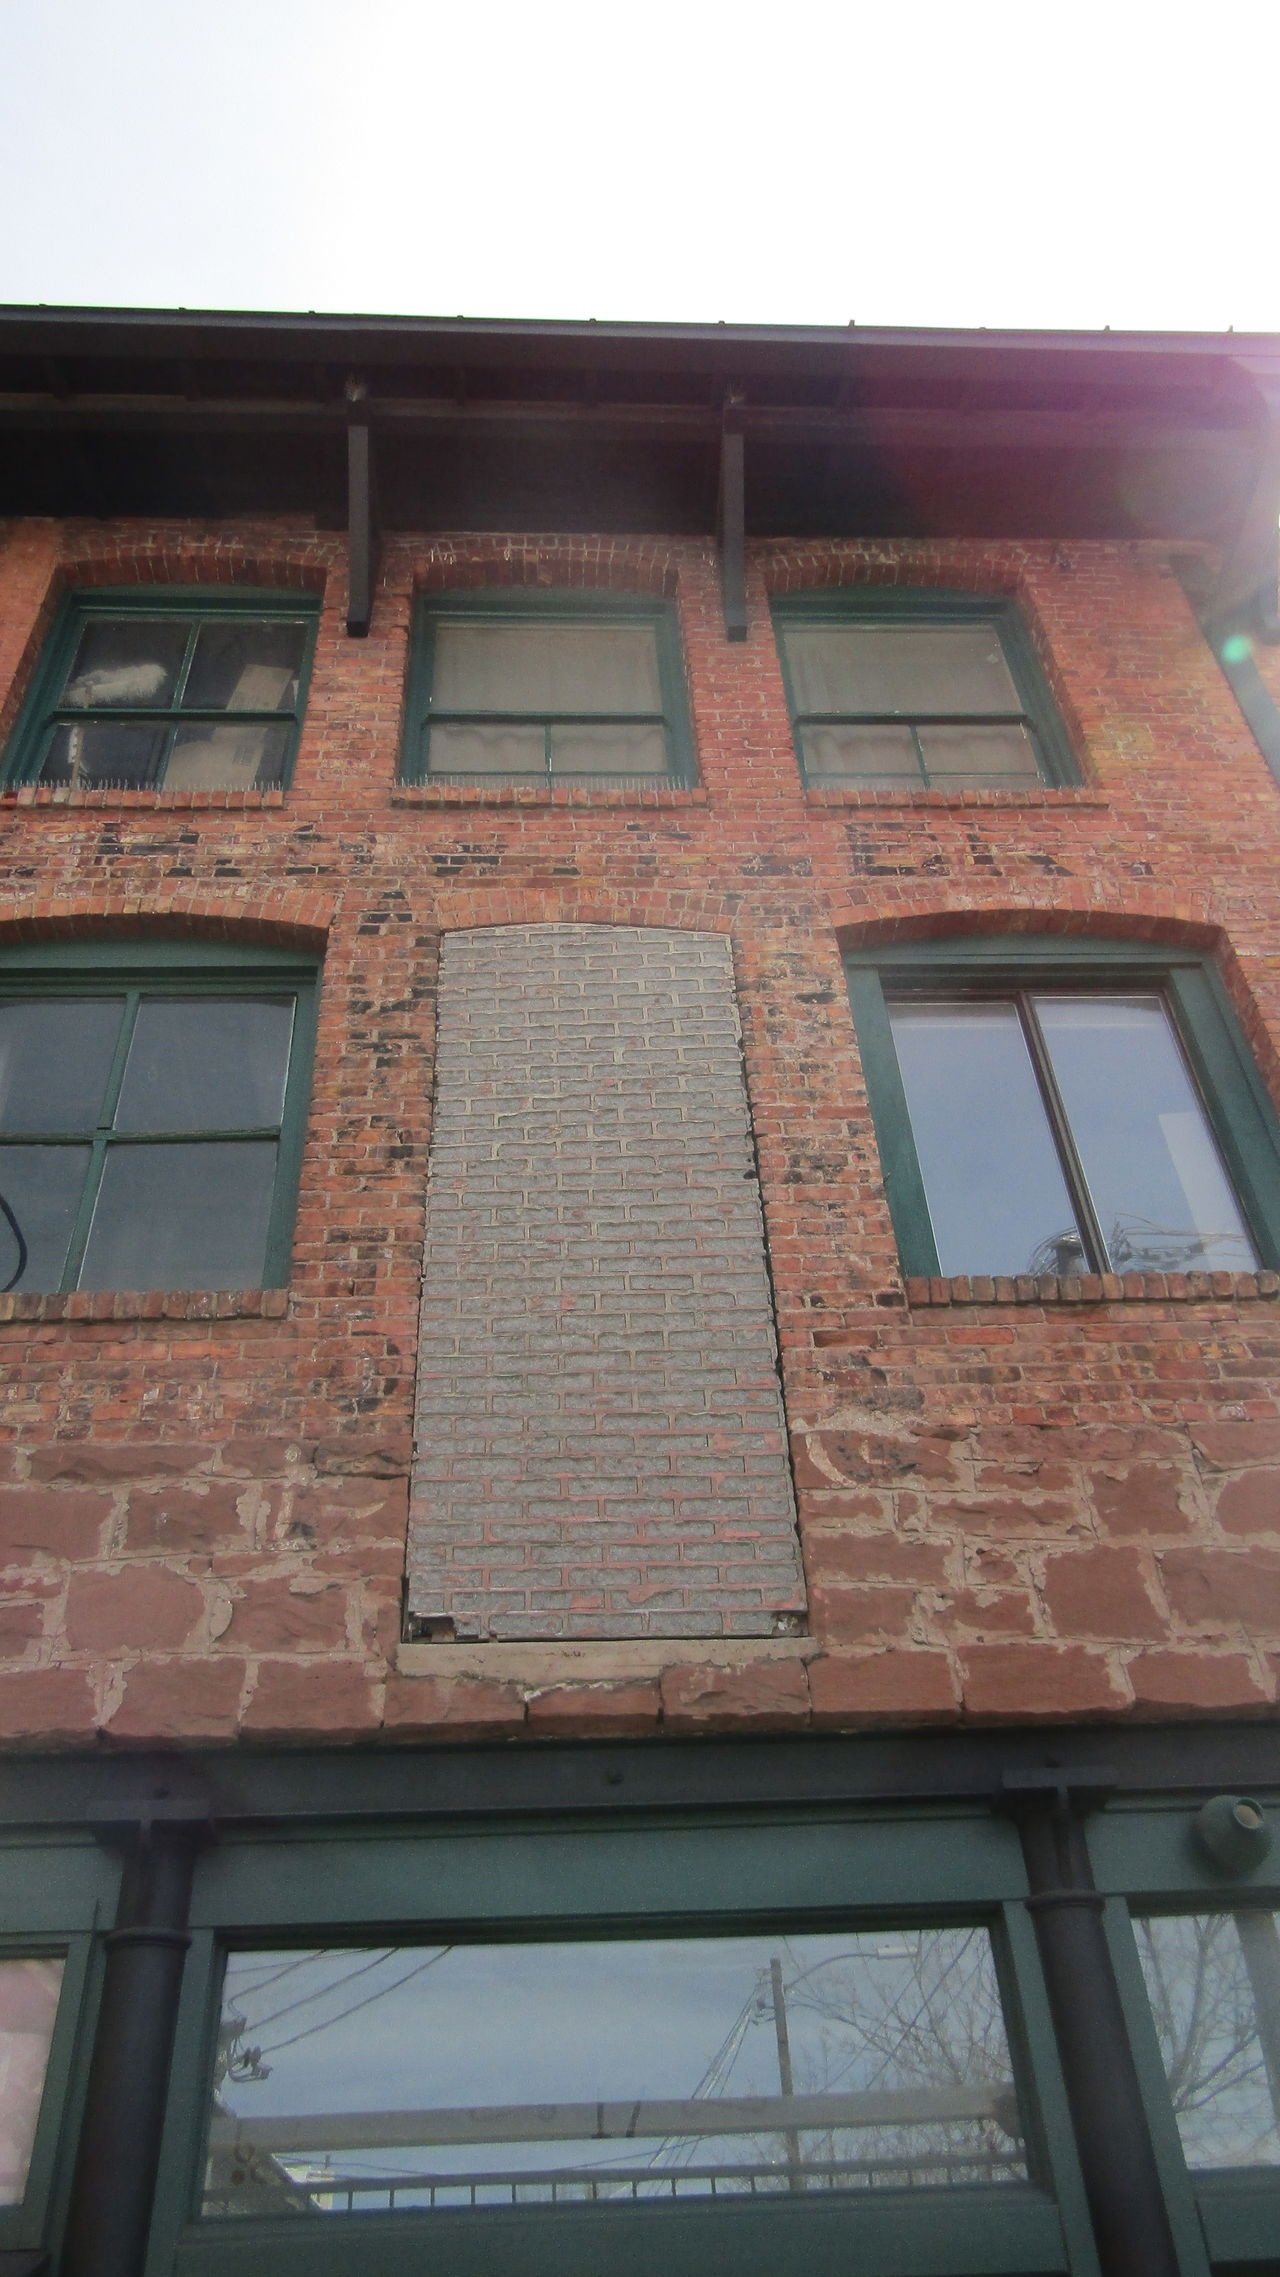 Architecture Balcony Brick Wall Building Building Exterior Built Structure Clear Sky Day Exterior Glass - Material House Low Angle View No People Outdoors Residential Building Residential Structure Sky Sunlight Wall - Building Feature Window